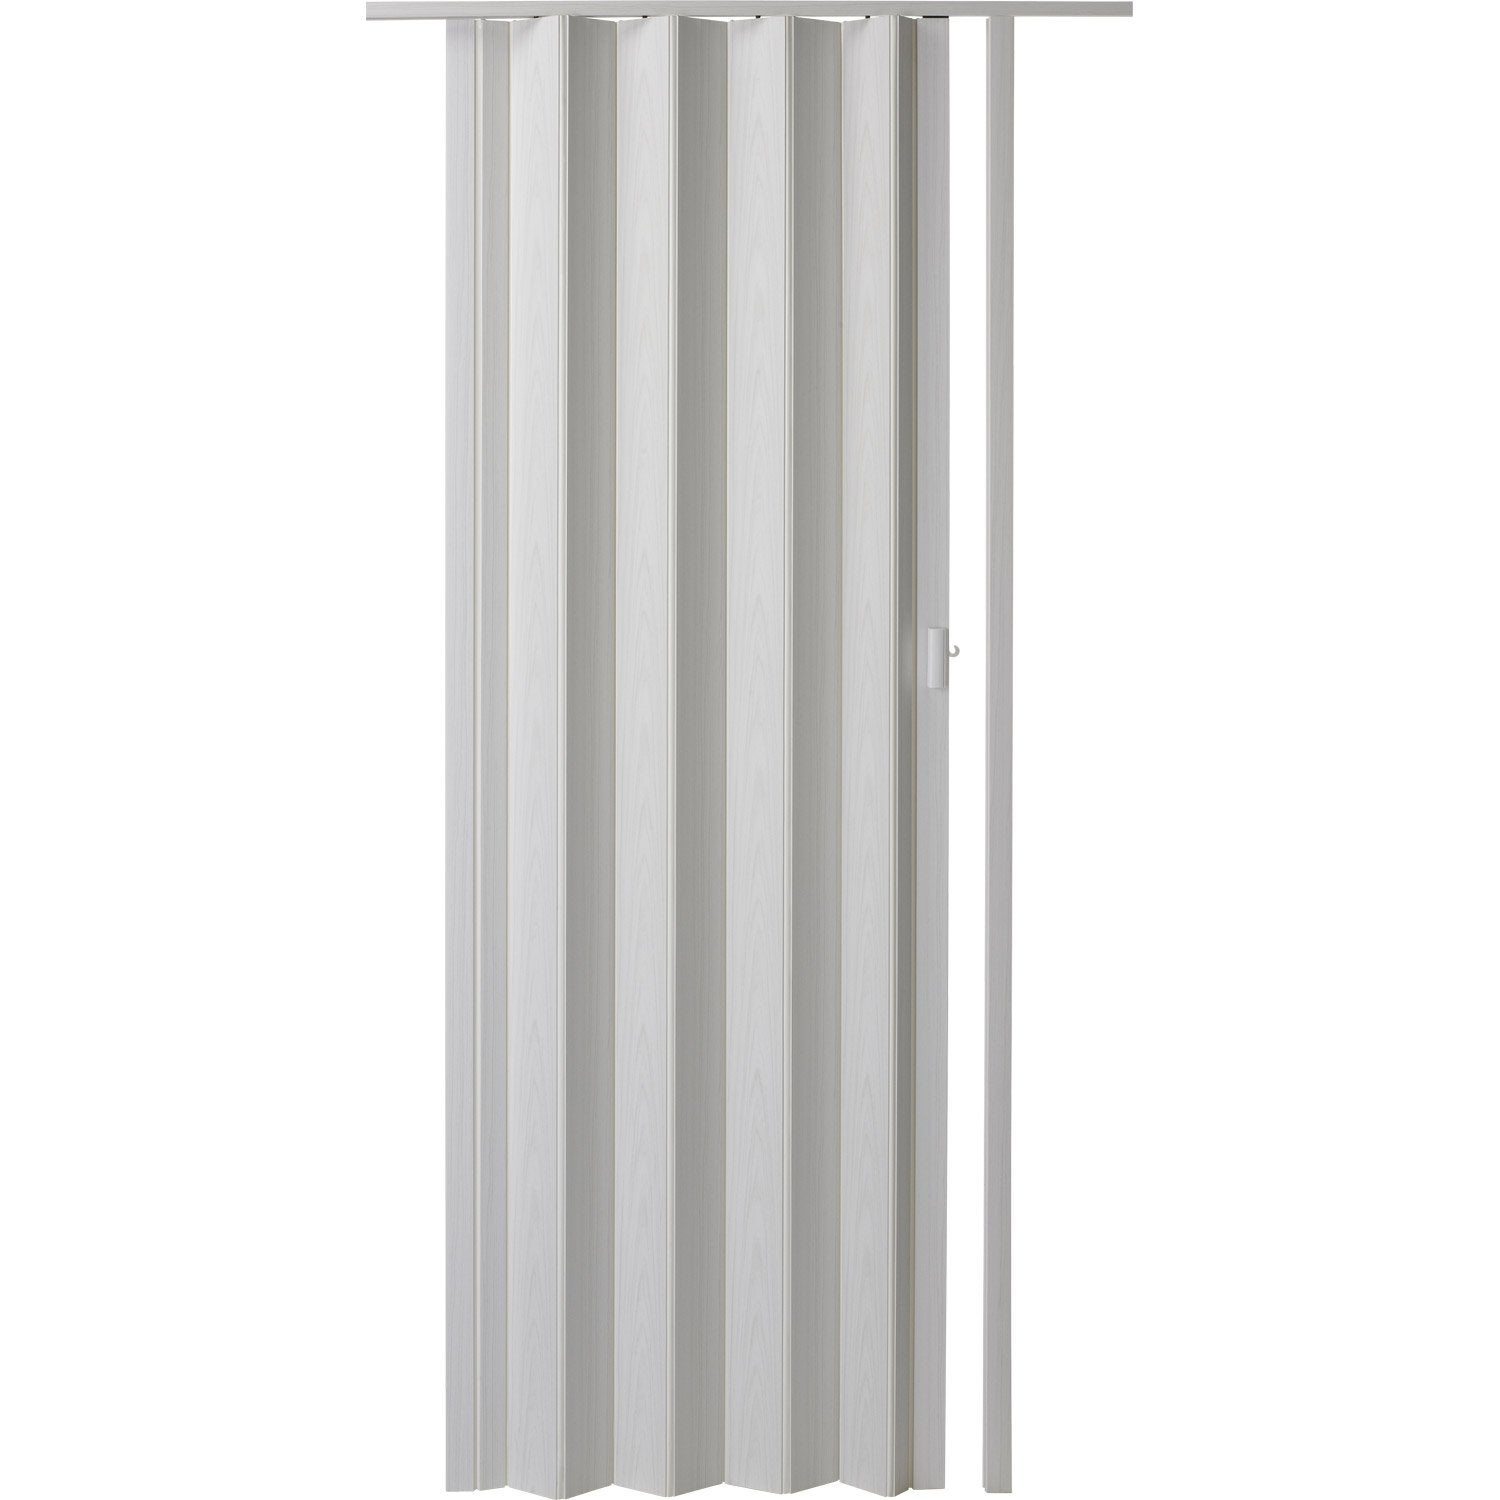 Porte accord on rio en r sine de synth se fr ne blanc 205 x 85 cm leroy me - Portes accordeons leroy merlin ...